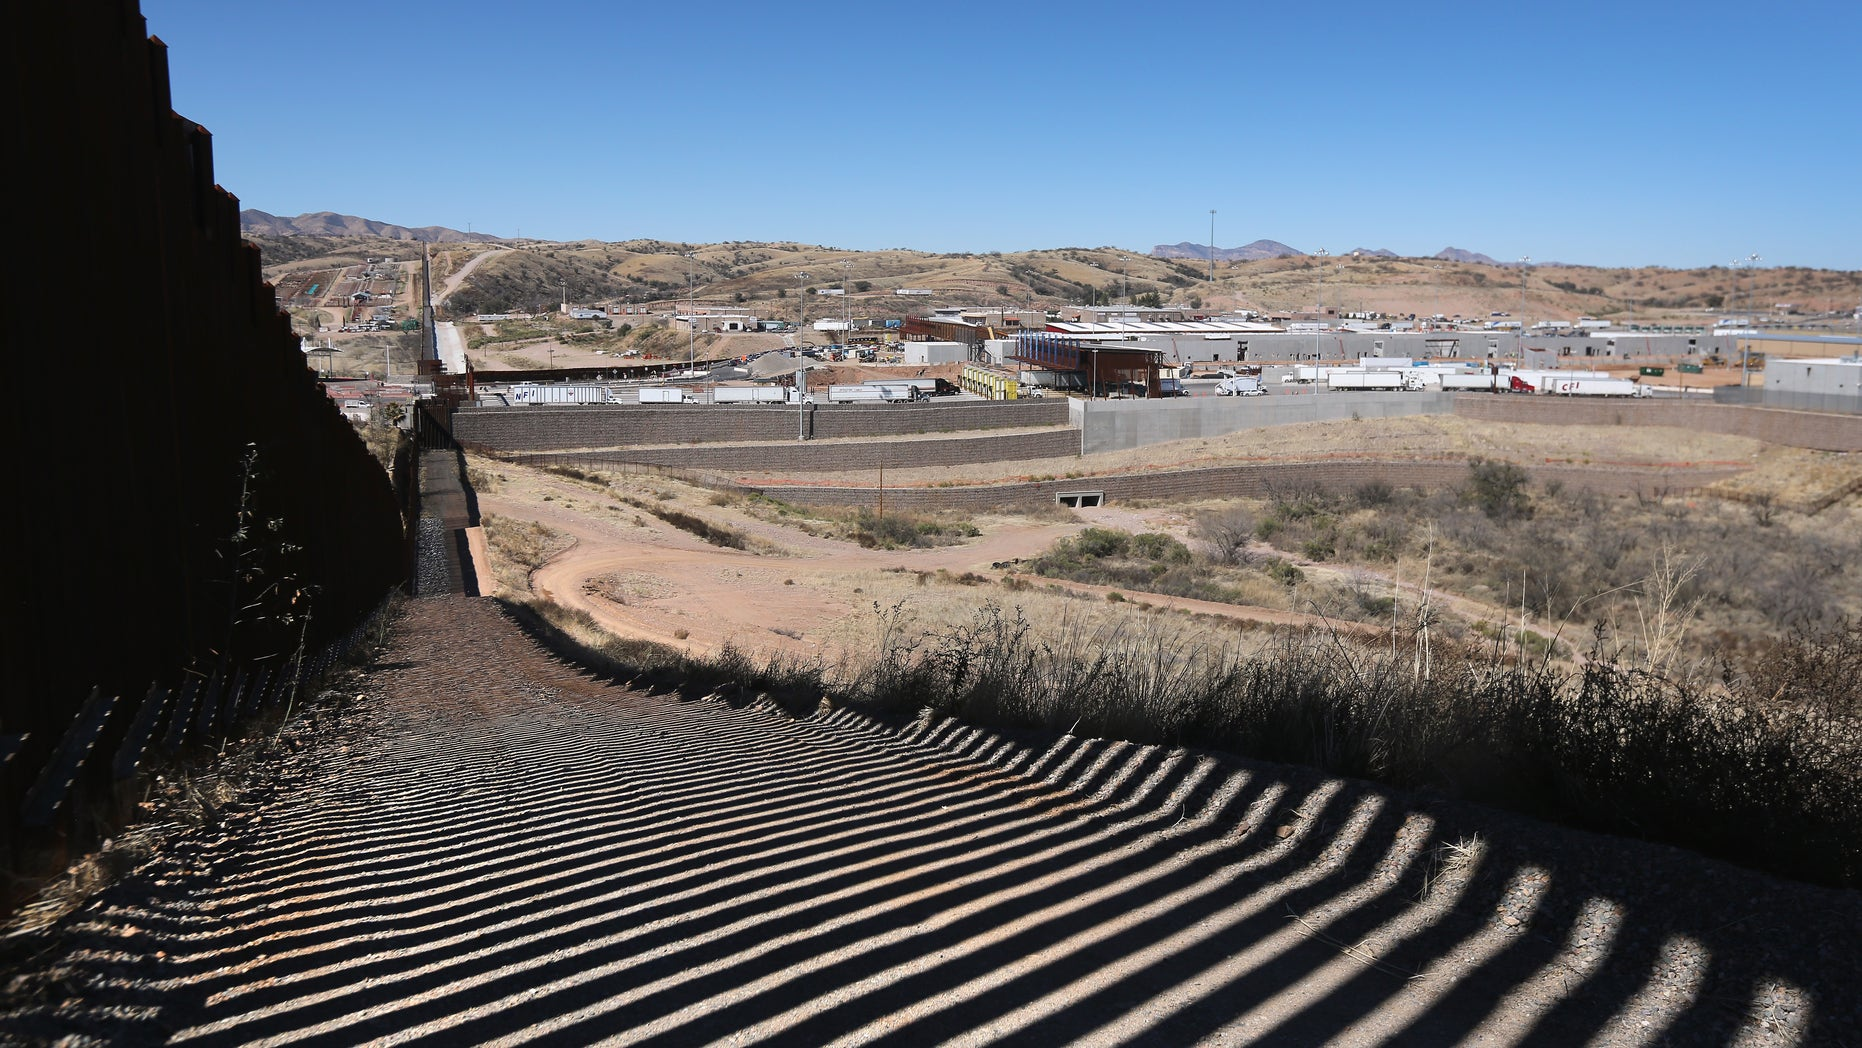 The U.S.-Mexico border stretches into the distance in Nogales, Arizona.